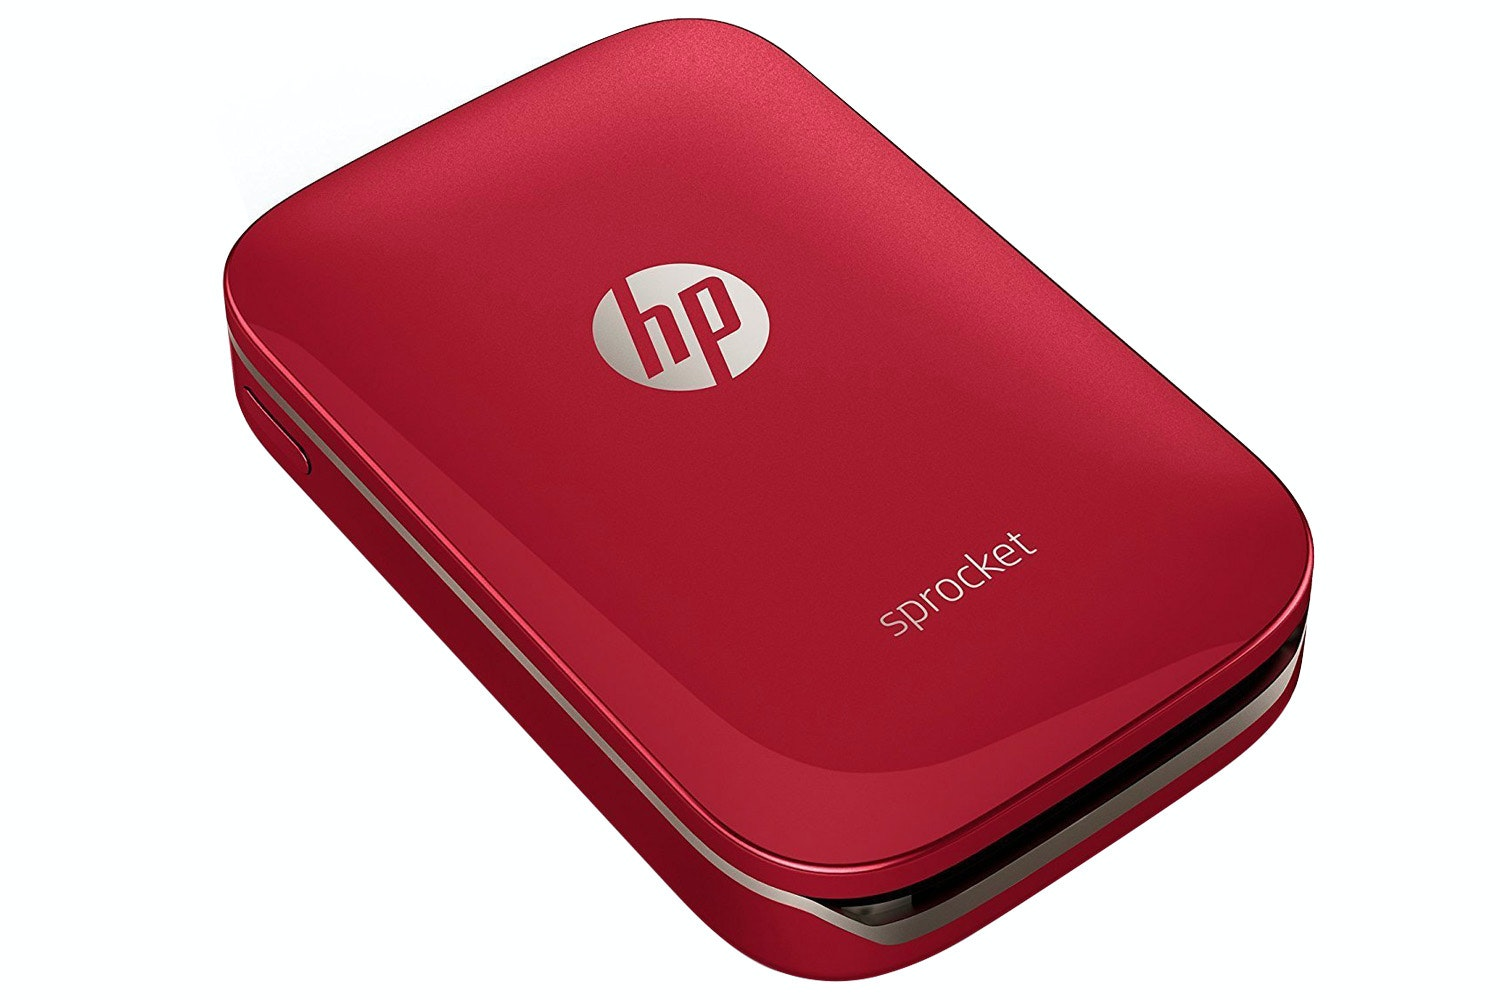 HP Sprocket Photo Printer | Red